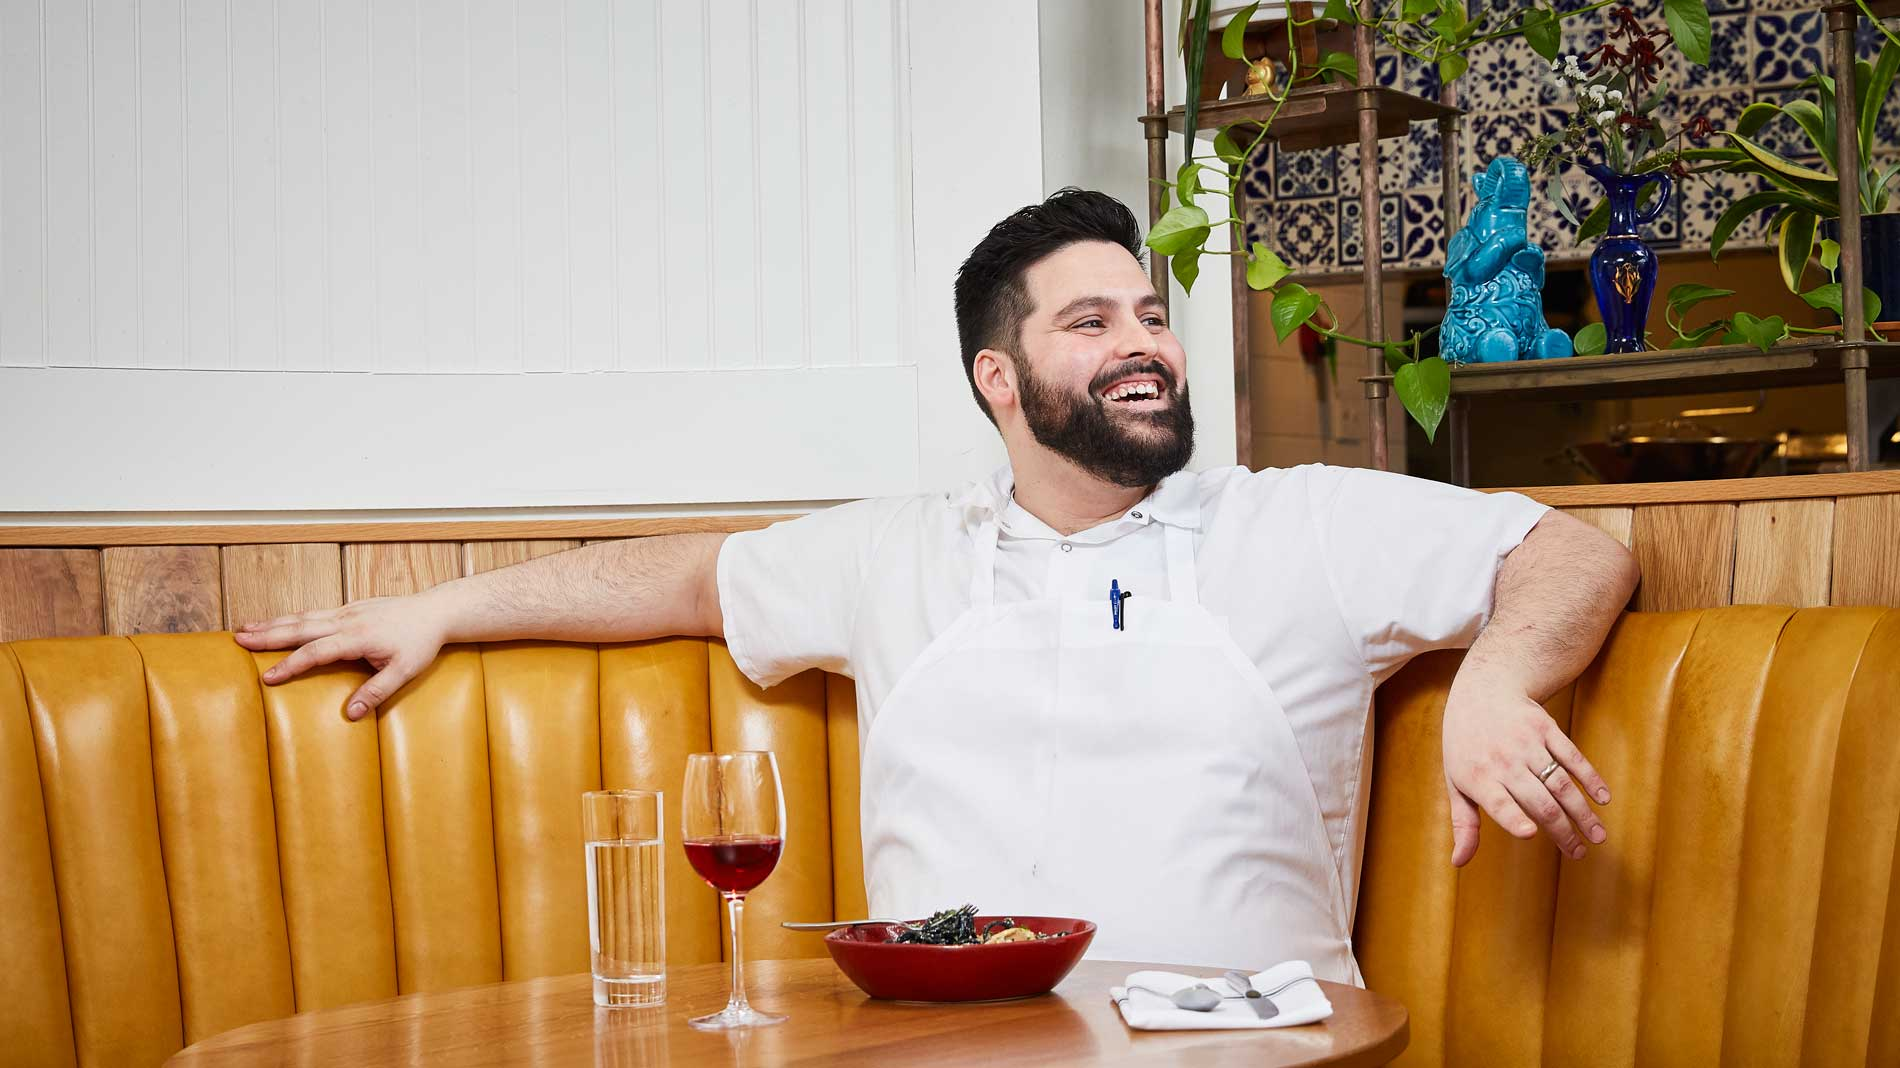 a bearded chef sitting at a yellow restaurant banquette